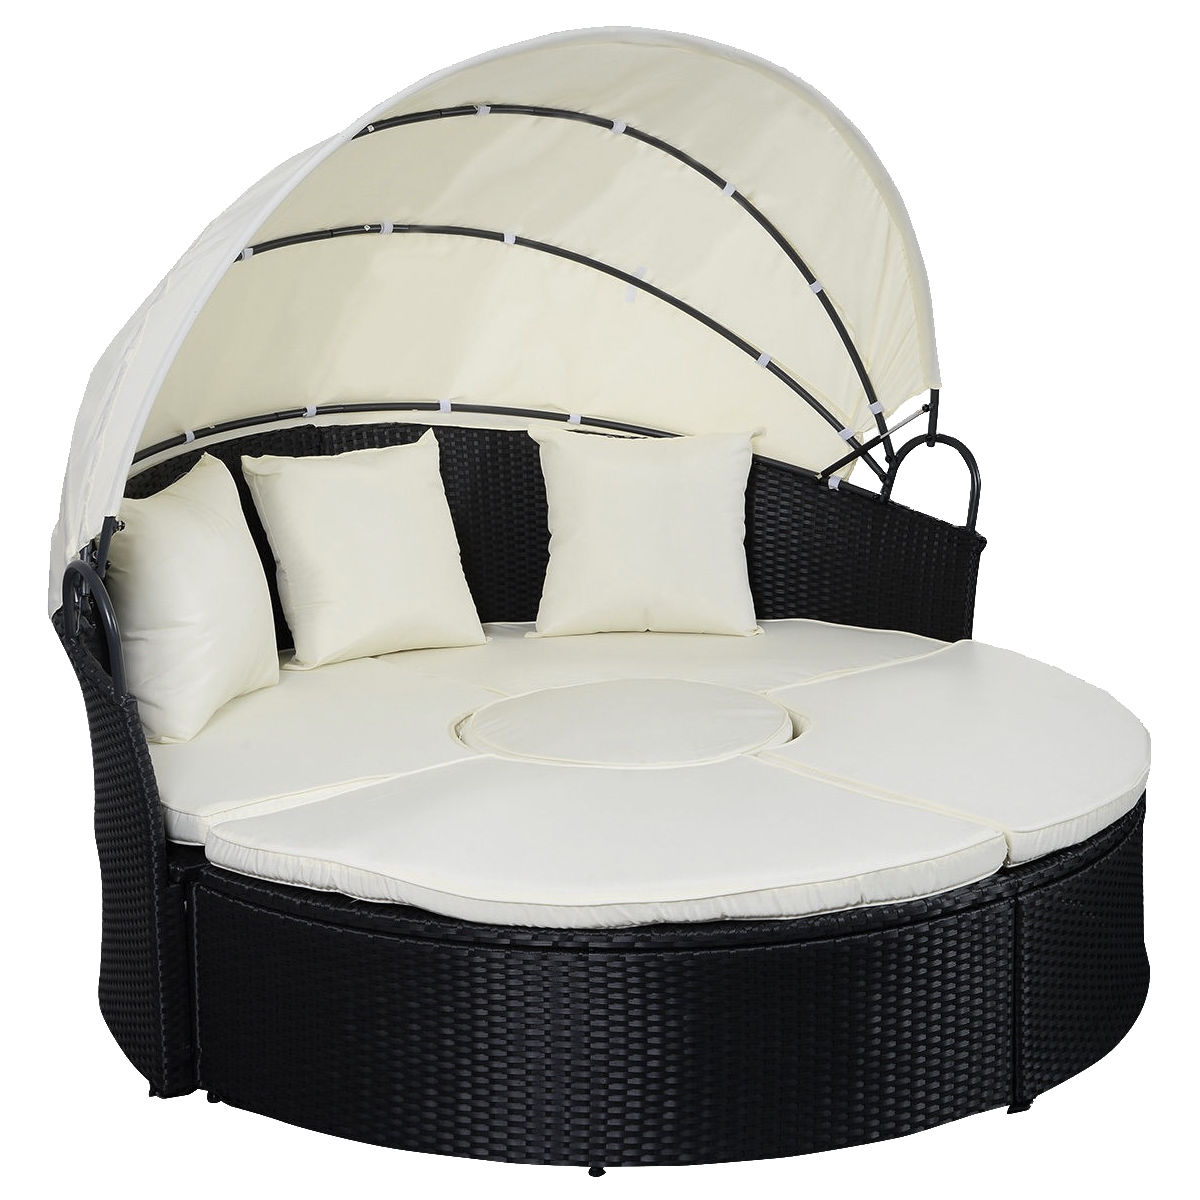 GHP Wicker Rattan Daybed Outdoor Patio Sofa Furniture Set with Retractable Canopy